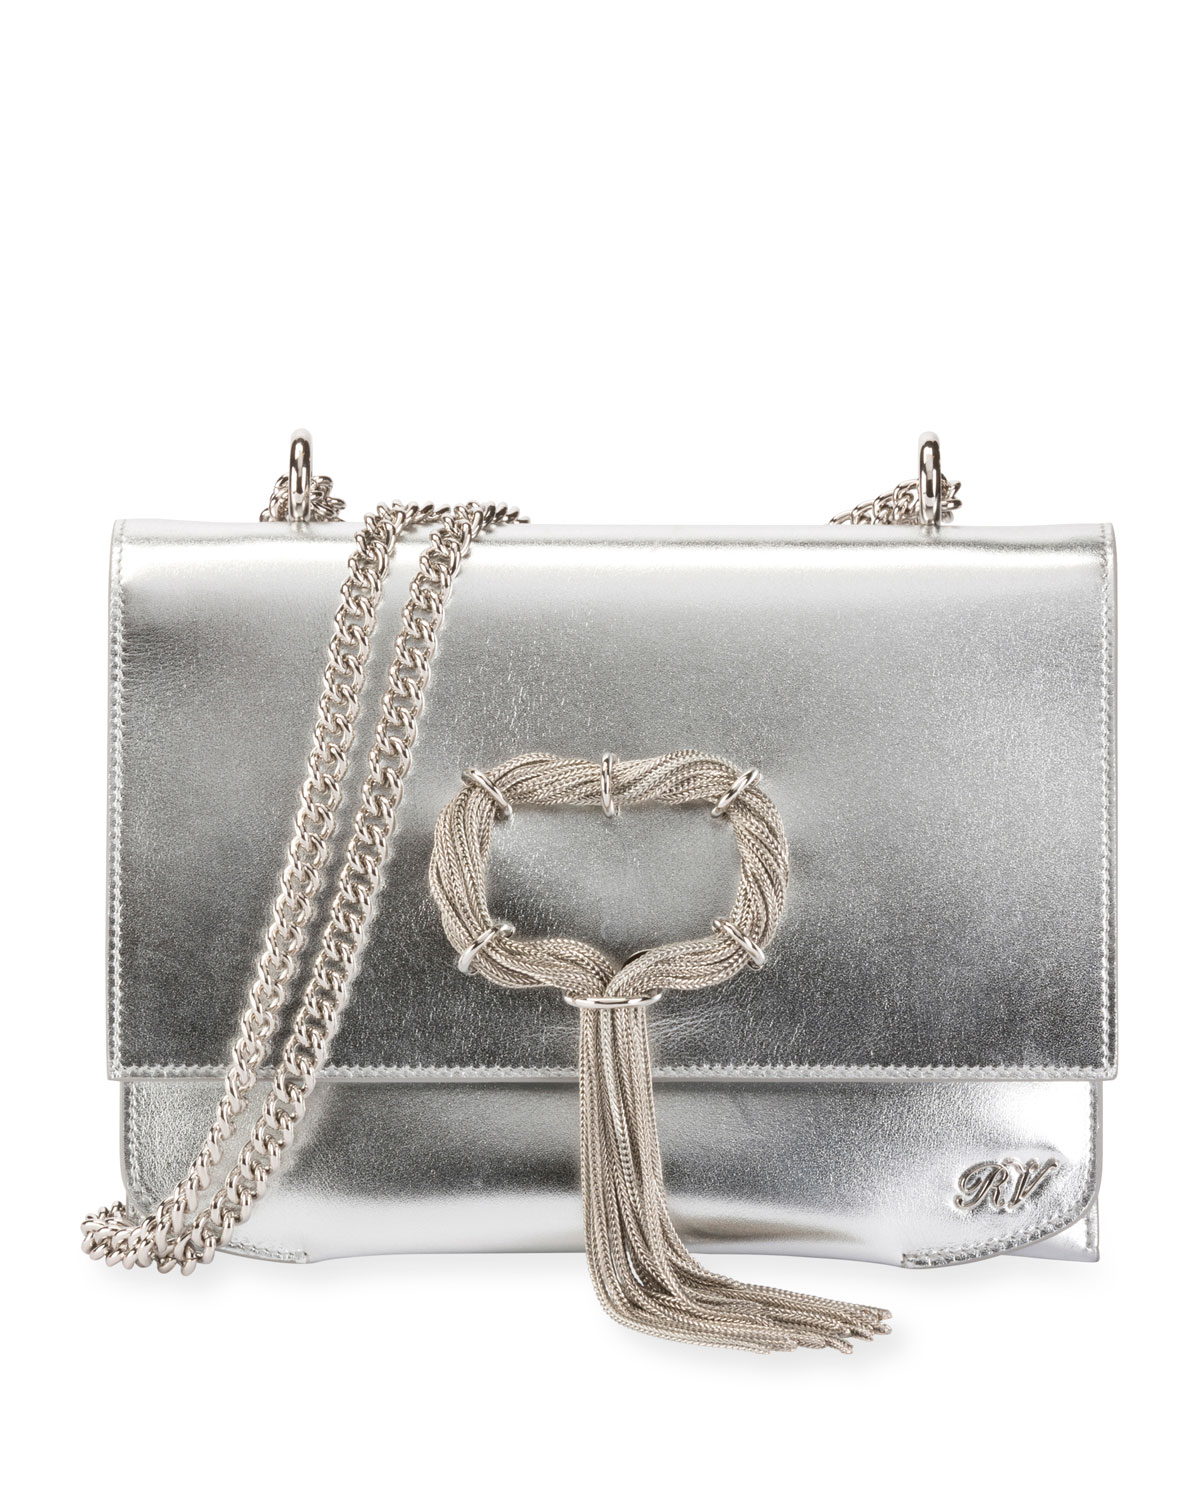 620c6614a9 Roger Vivier Club Chain Metallic Leather Evening Clutch Bag